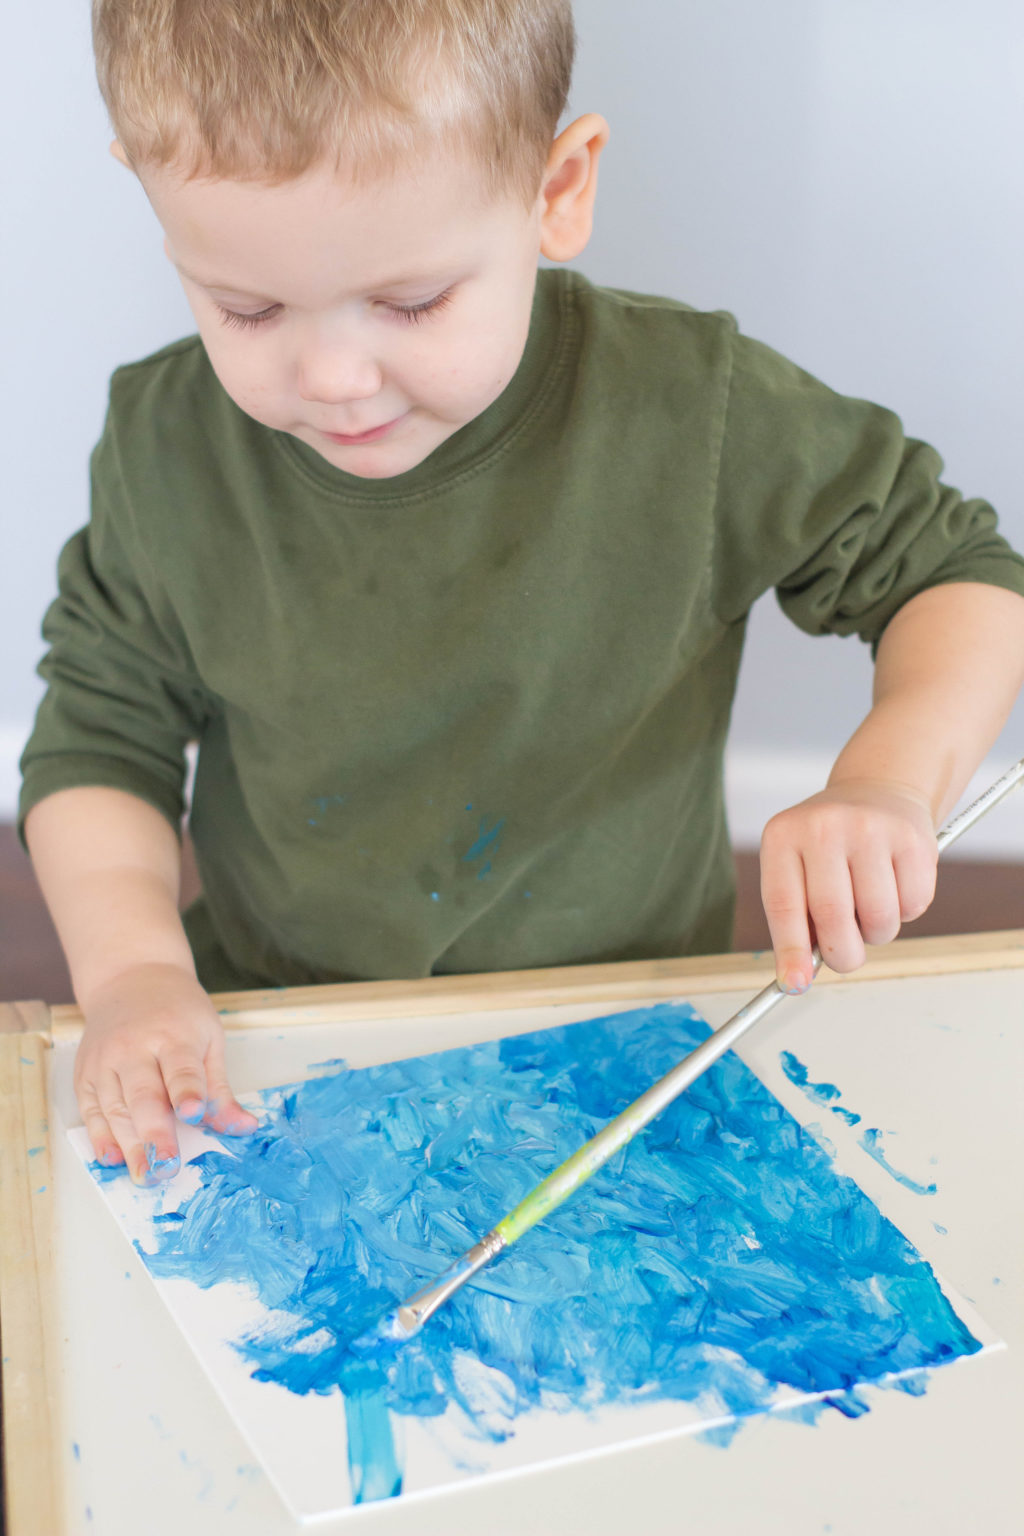 Looking for a winter toddler craft to do with your little one? Sparkly snow art is the perfect winter process art project!